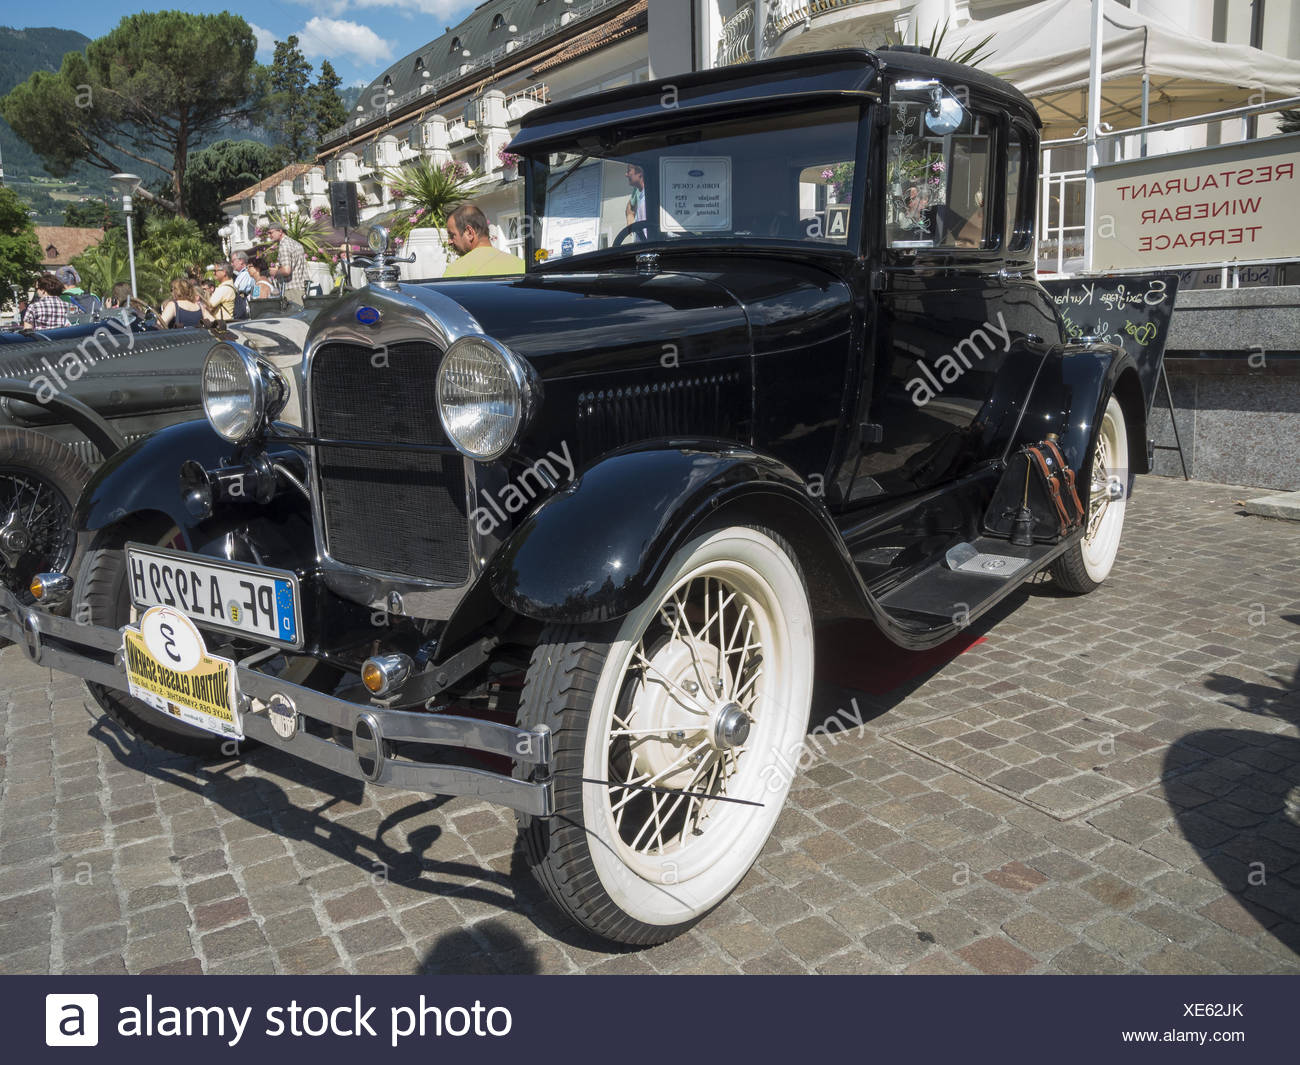 South tyrol classic cars 2015 Ford A Stock Photo: 284104875 - Alamy